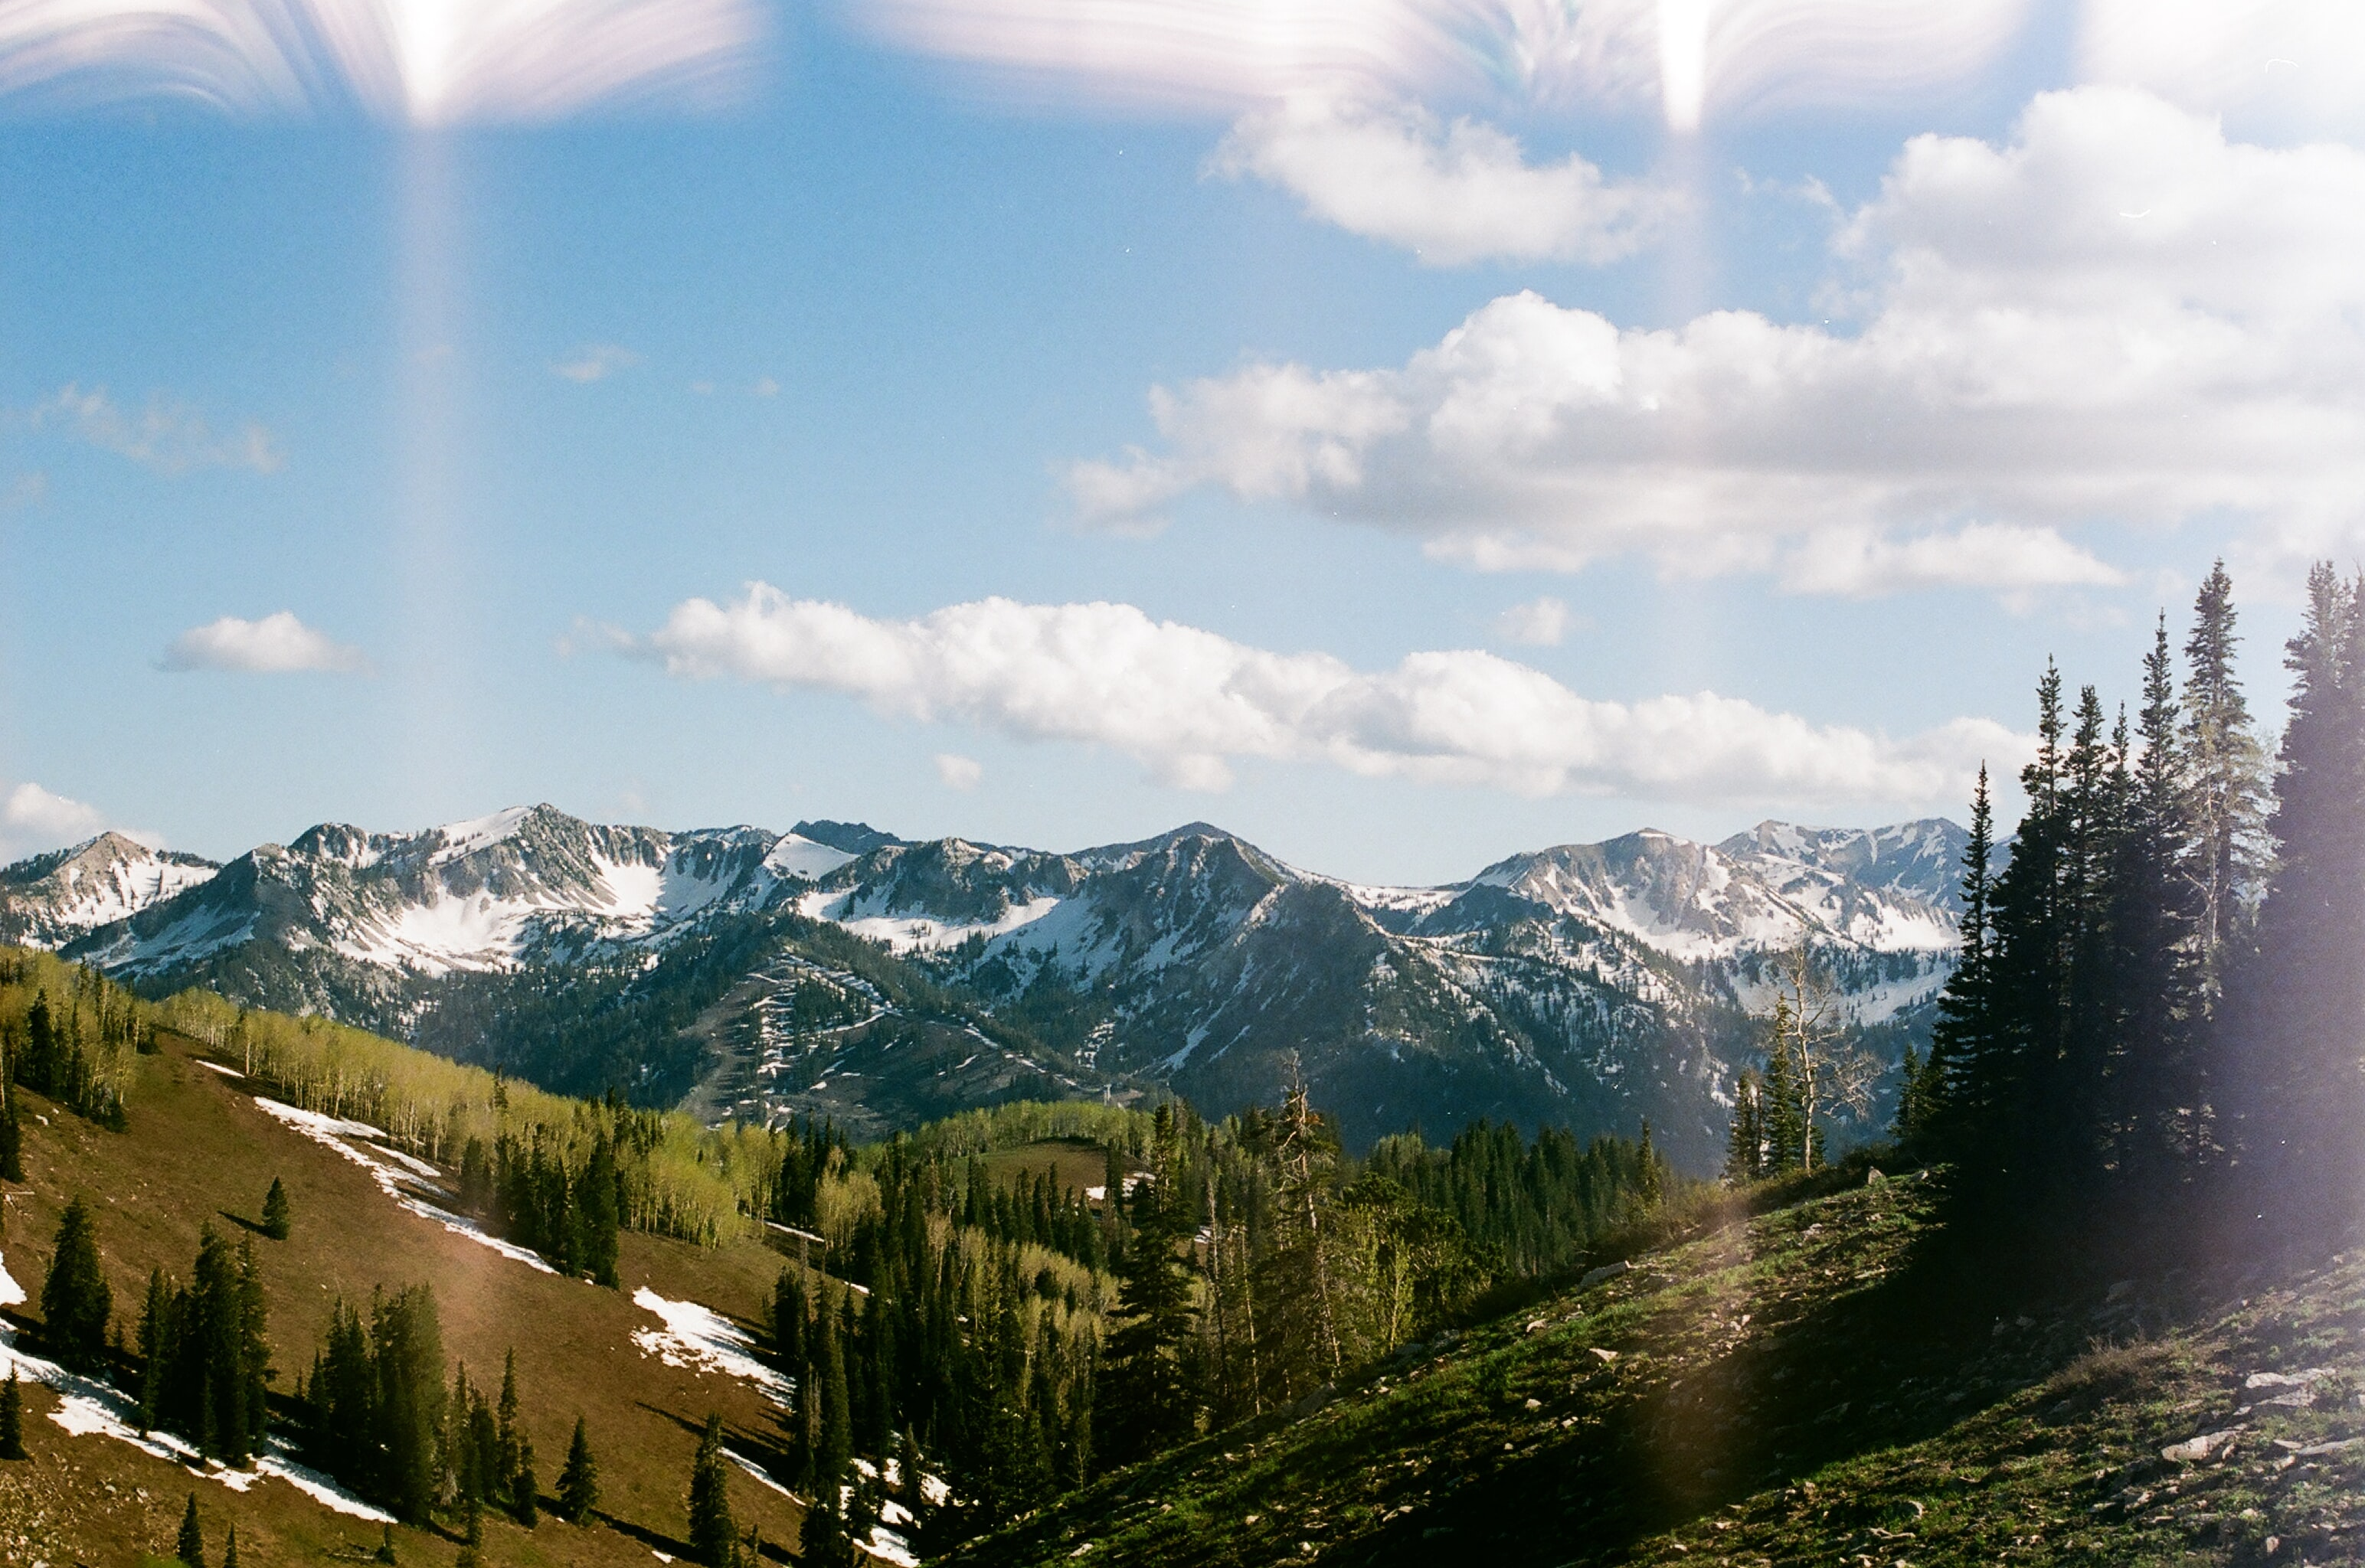 A panorama of a wooded valley with snow-capped mountains in the back